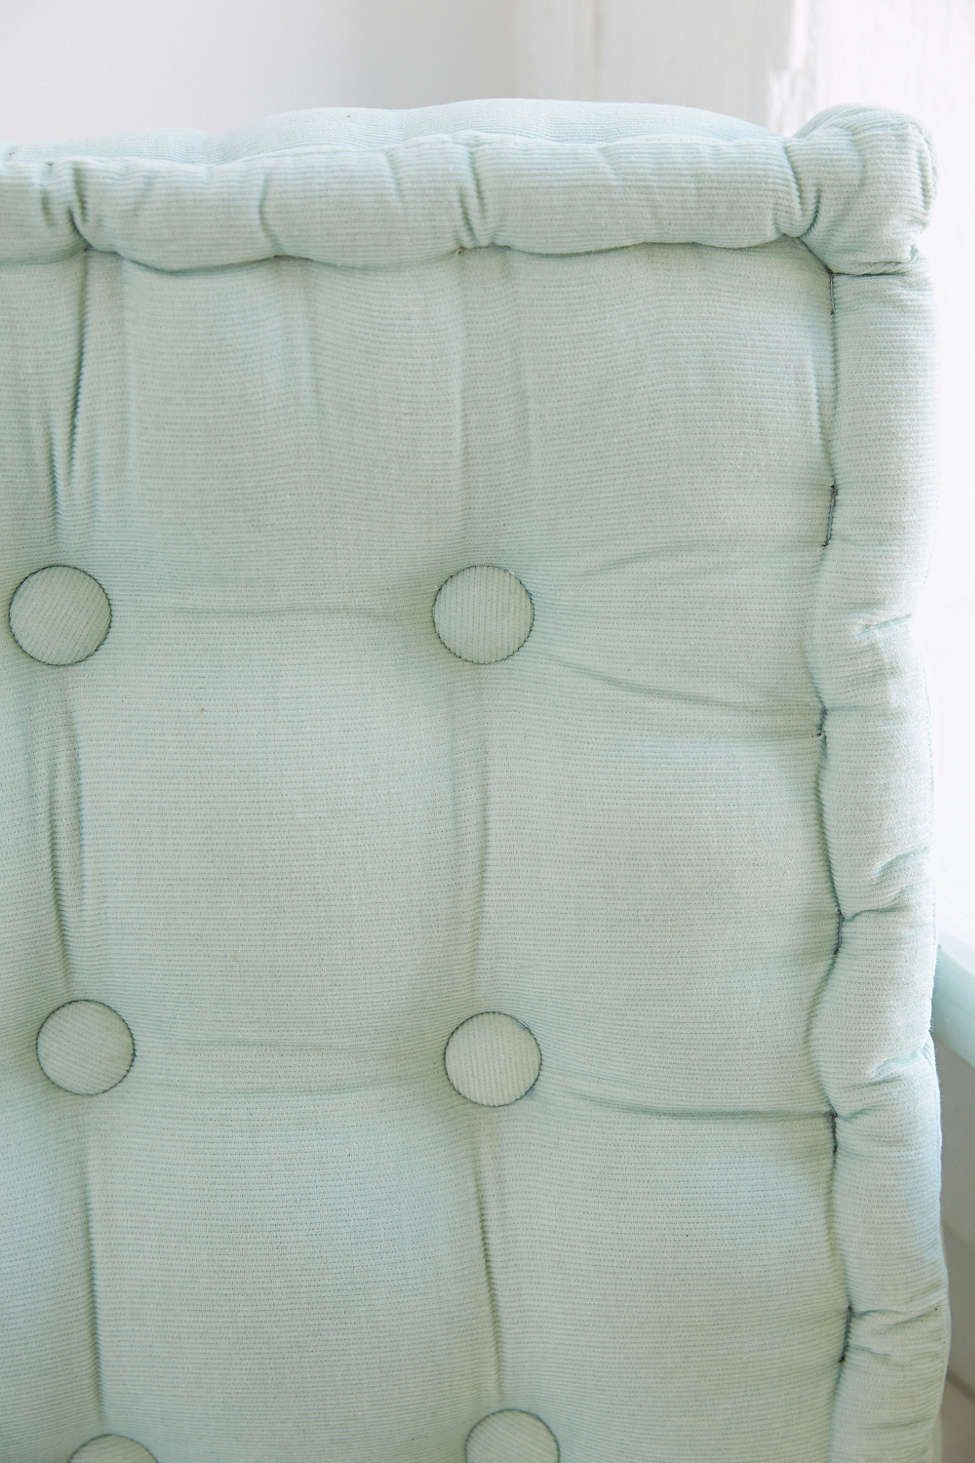 Tufted Corduroy Floor Pillow | Floor pillows and Pillows